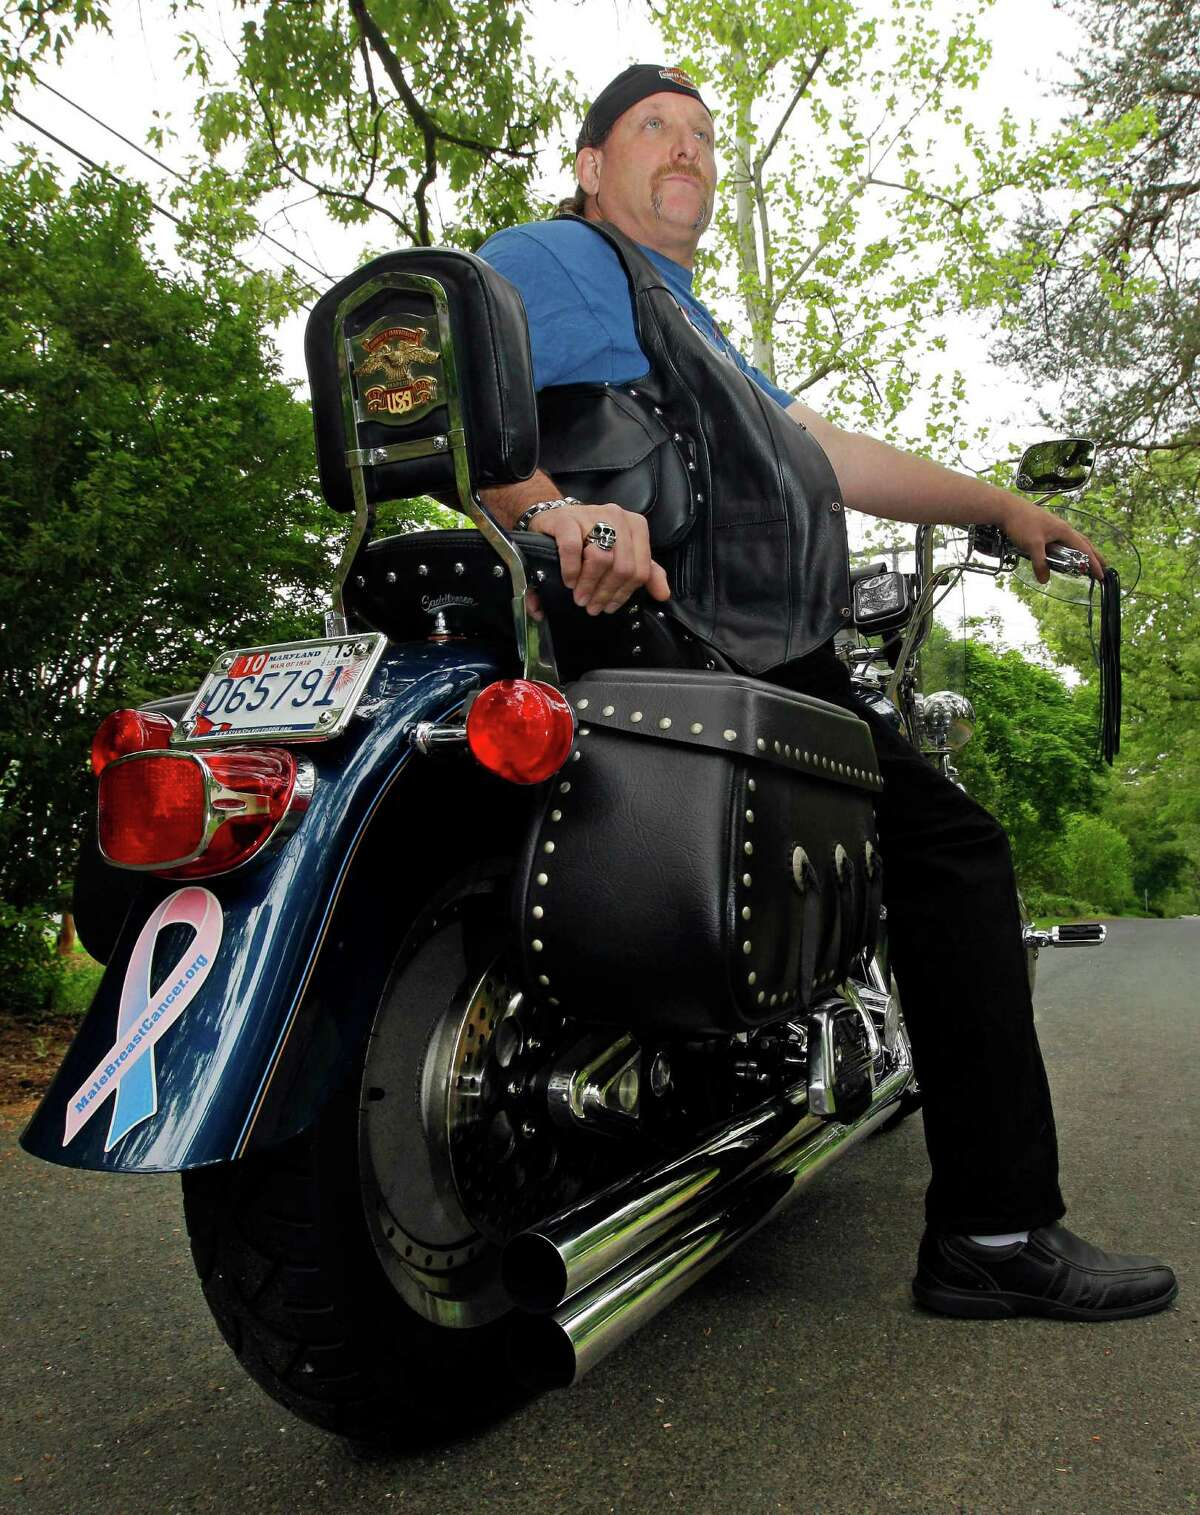 In this May 3, 2012 photo, breast cancer survivor Robert Kaitz sits on his motorcycle, which displays a male breast cancer survivor ribbon, in Severna Park, Md. Kaitz thought a small growth under his left nipple was just a harmless cyst. By the time he had it checked out in 2006, almost two years later, the lump had started to hurt. The diagnosis of breast cancer was a shock.